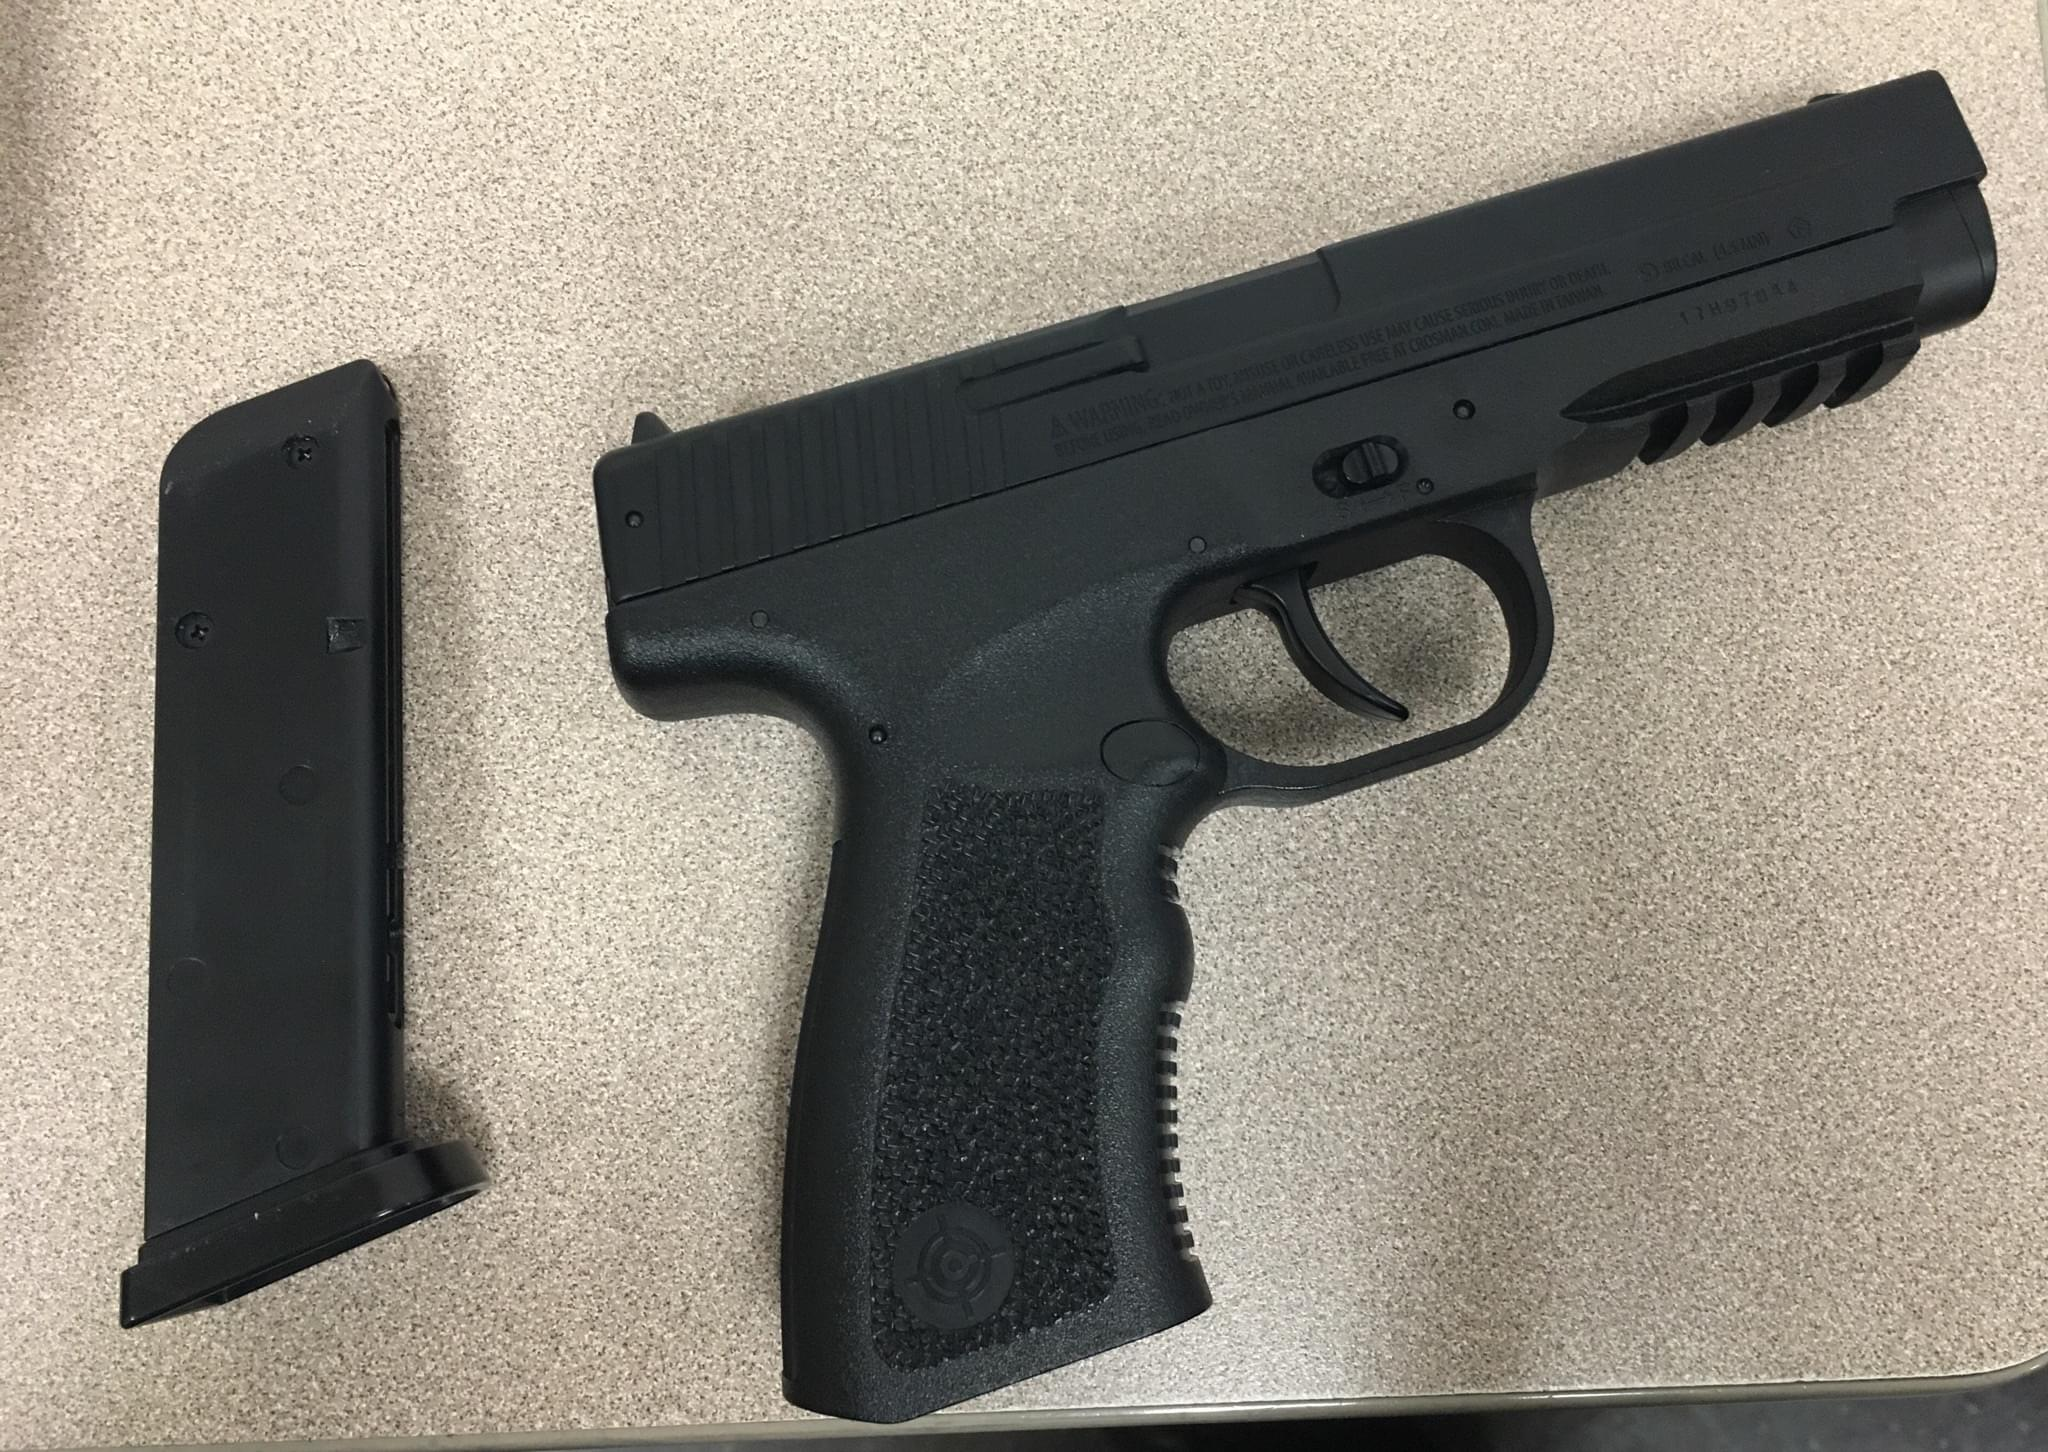 Lincoln Southwest High School Student Lodged For Bringing Realistic BB Gun To School